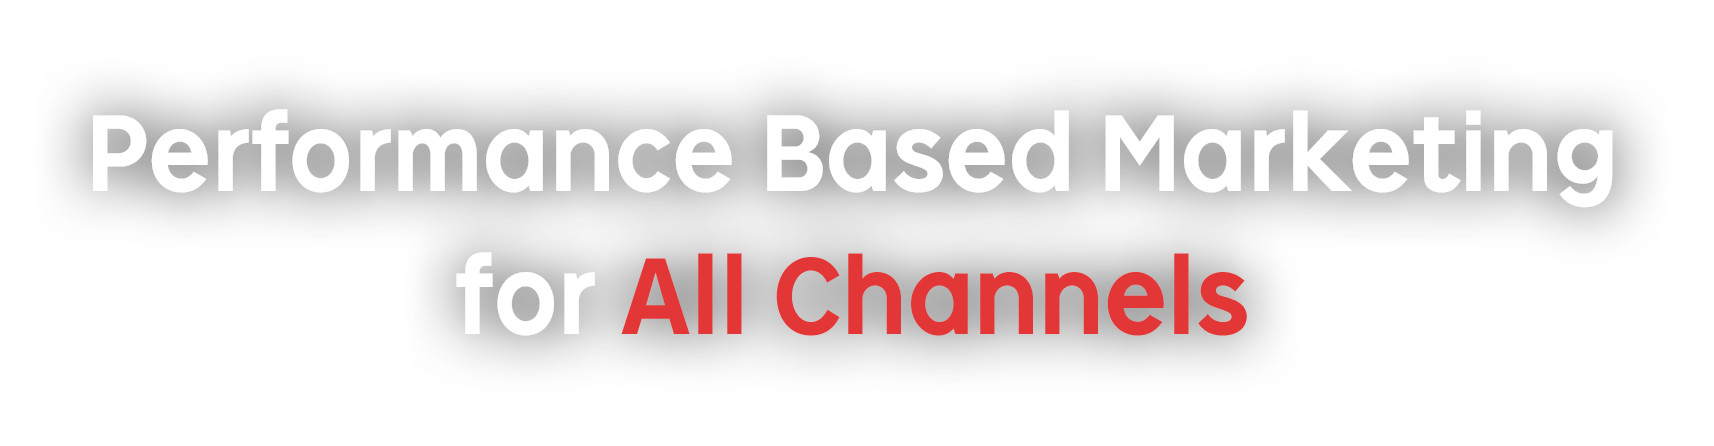 Performance Based Marketing for All Channels